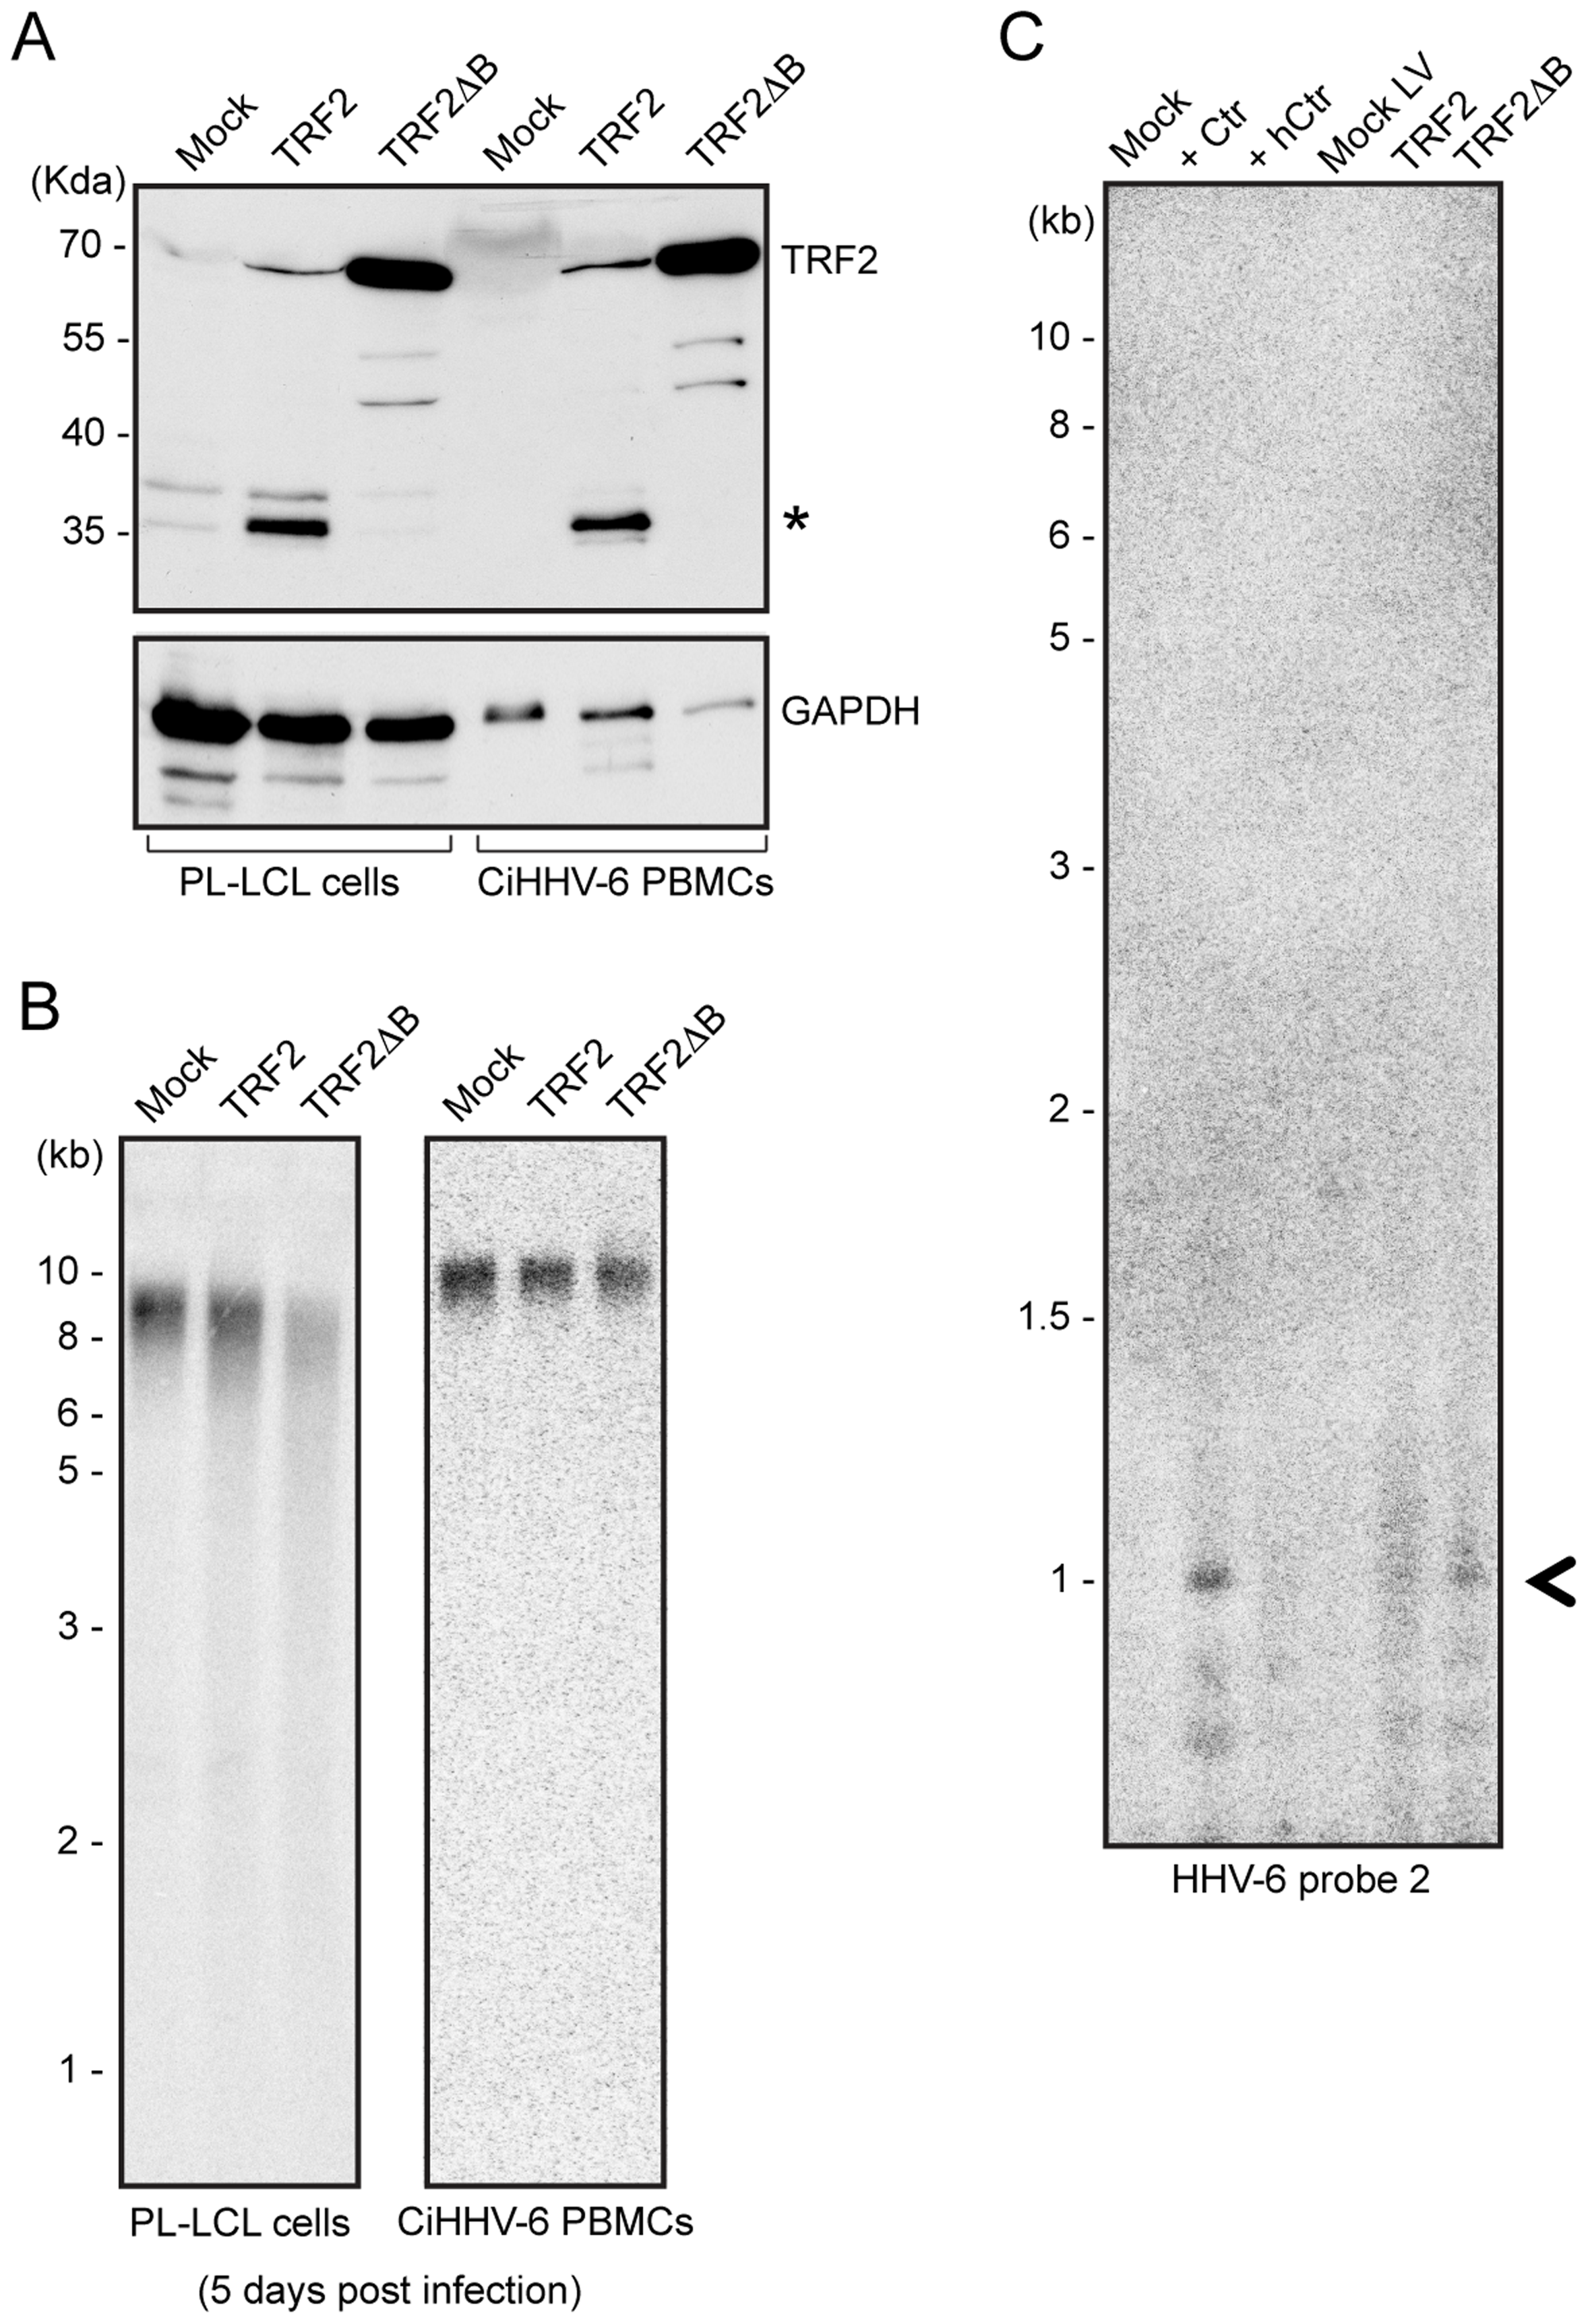 TRF2ΔB overexpression induces formation of circular HHV-6 genome in ciHHV-6 cells.